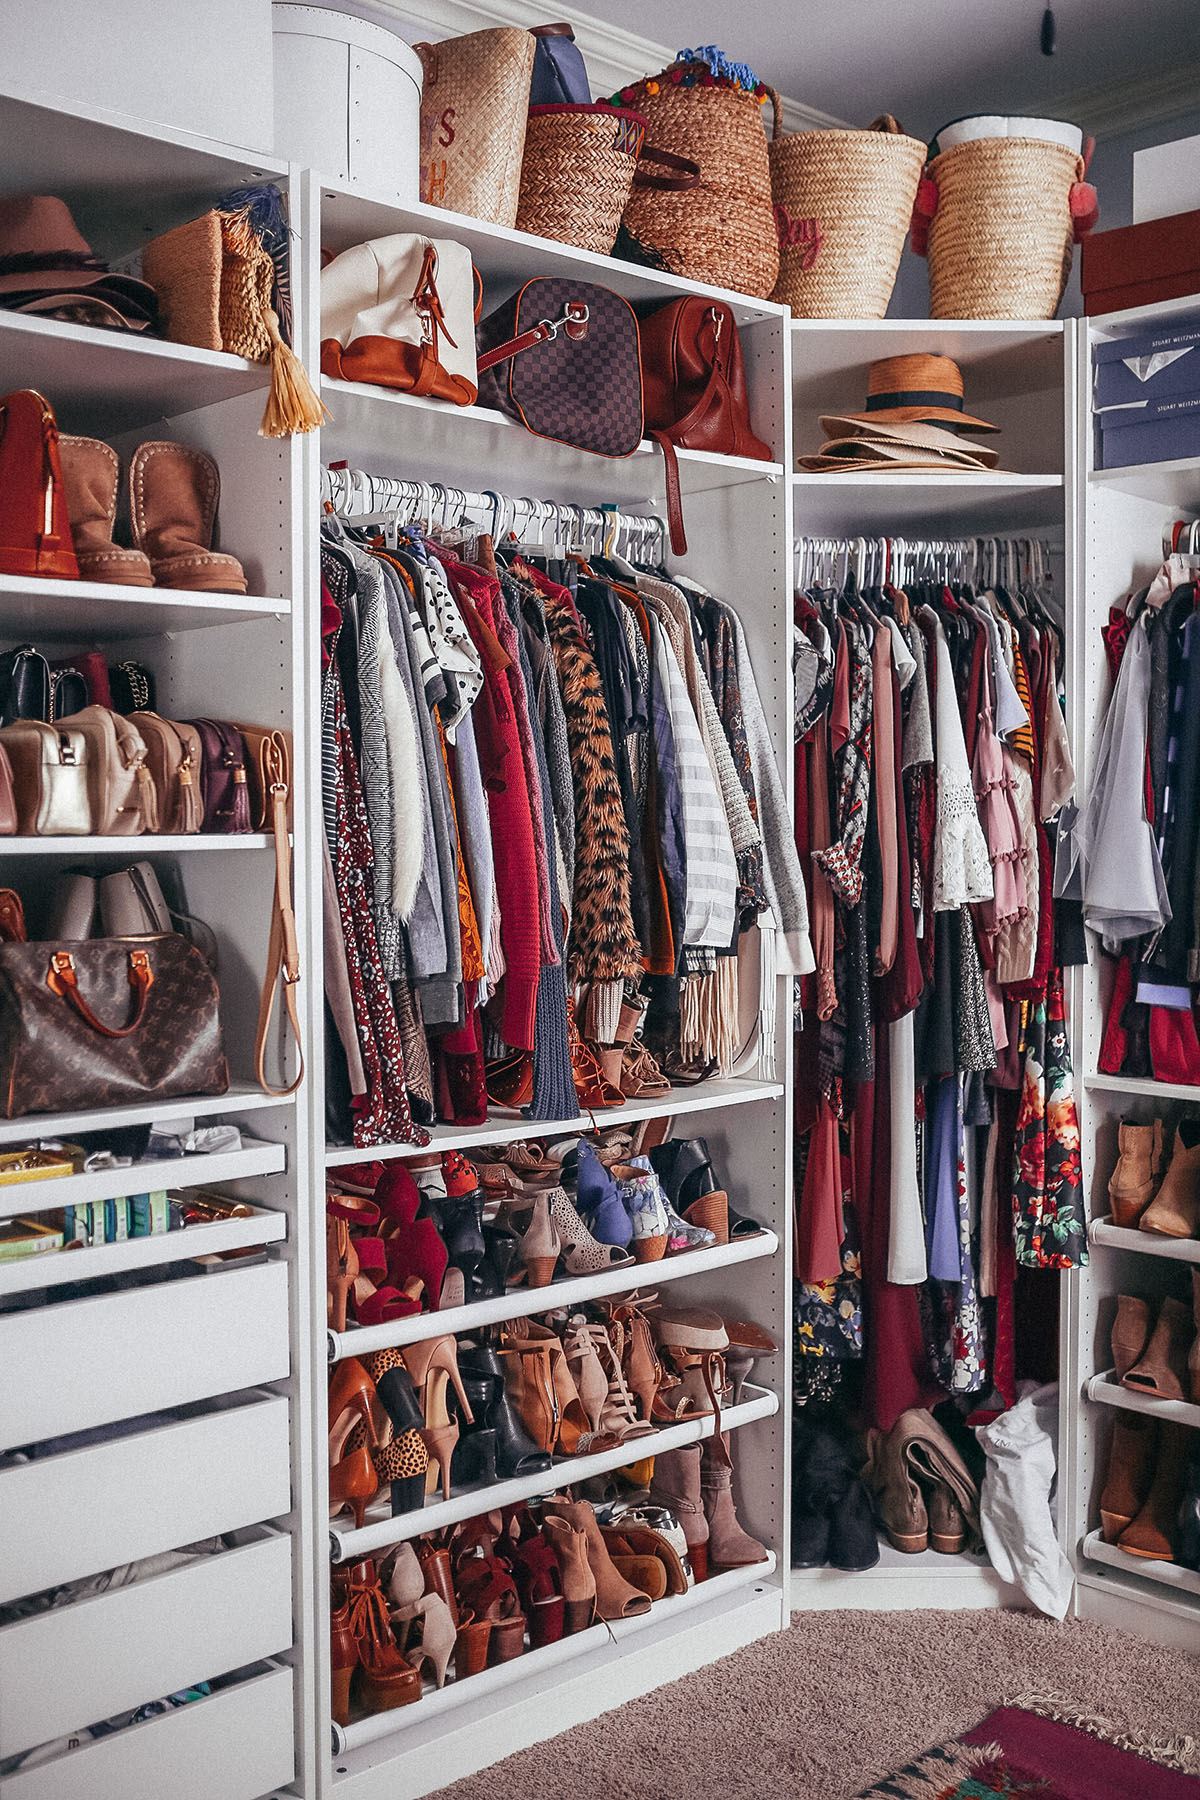 How to clean out your closet closet organization tips - Cleaning out your closet ...